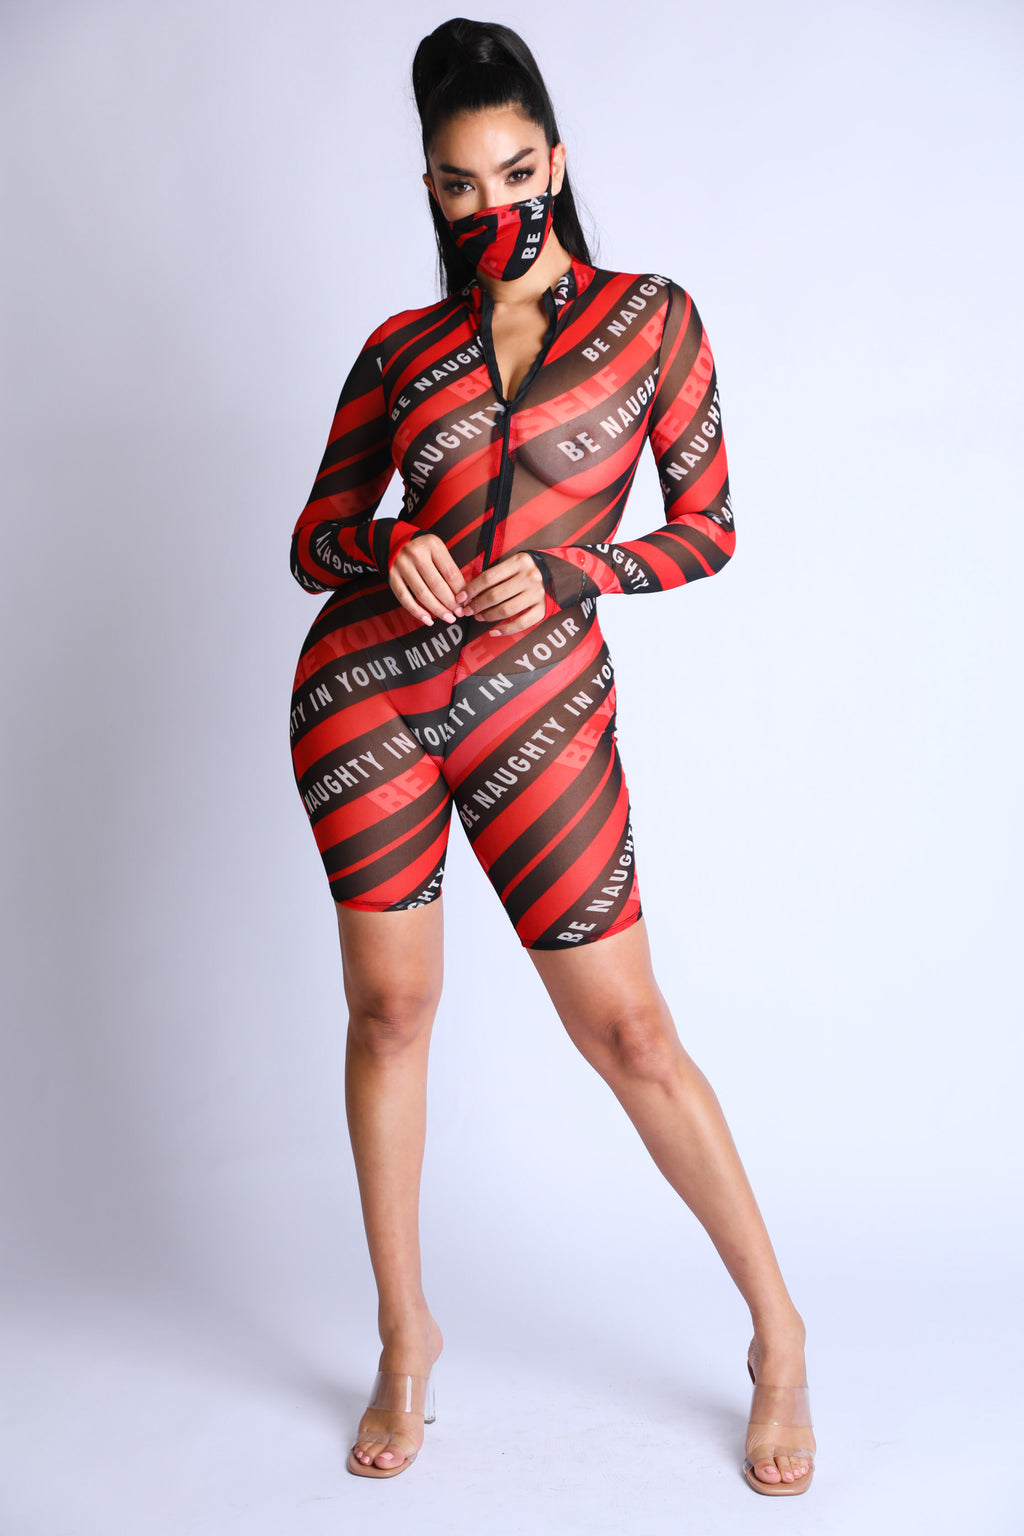 Sexy Be Naughty Print V-Neck Long Sleeve Mesh Romper w/mask - Fashion House USA